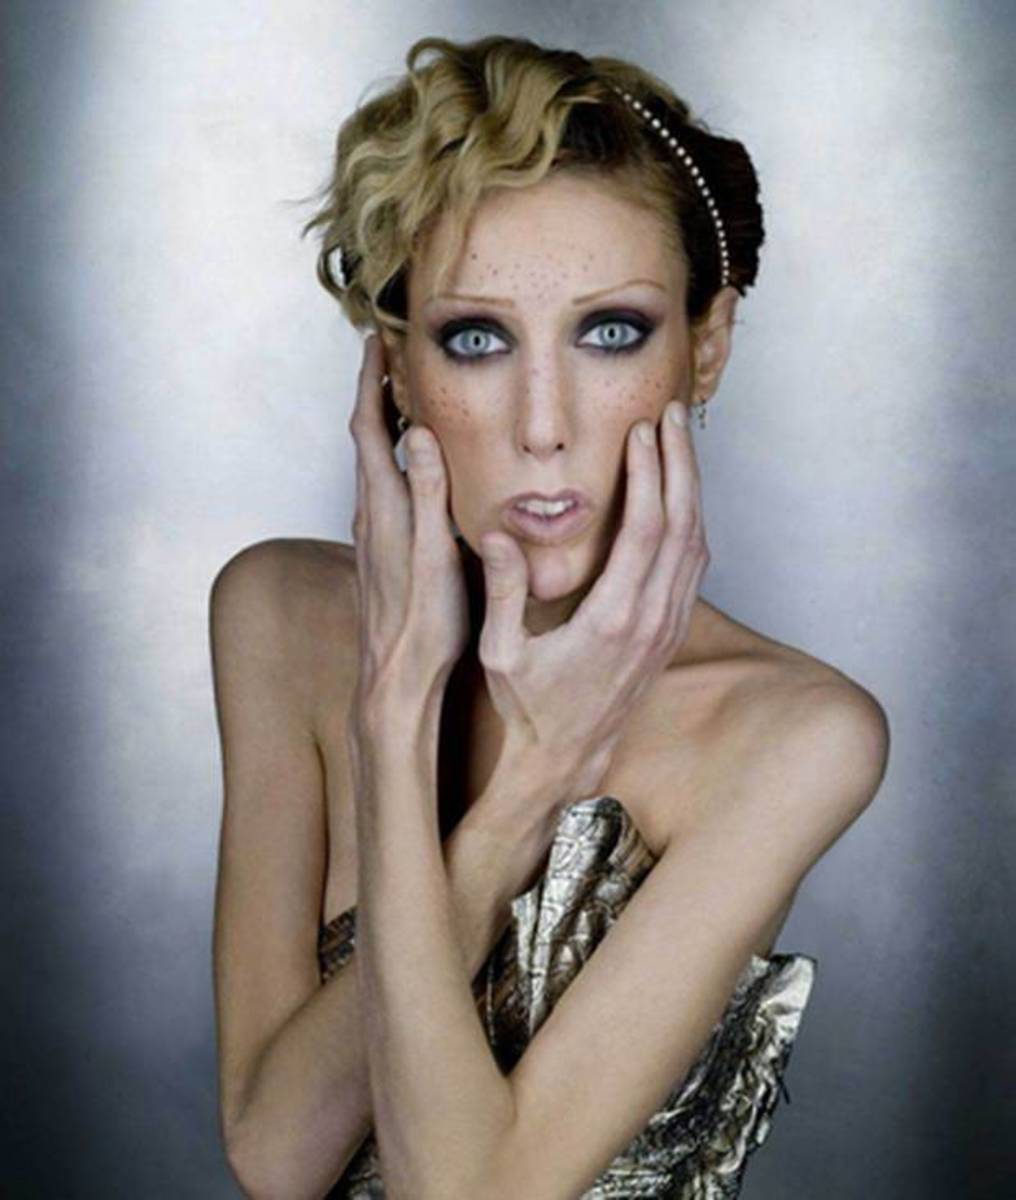 Isabelle Caro, a French model who became a symbol of the fight against anorexia when she was photographed naked for a controversial advertising campaign, has died at the age of 28